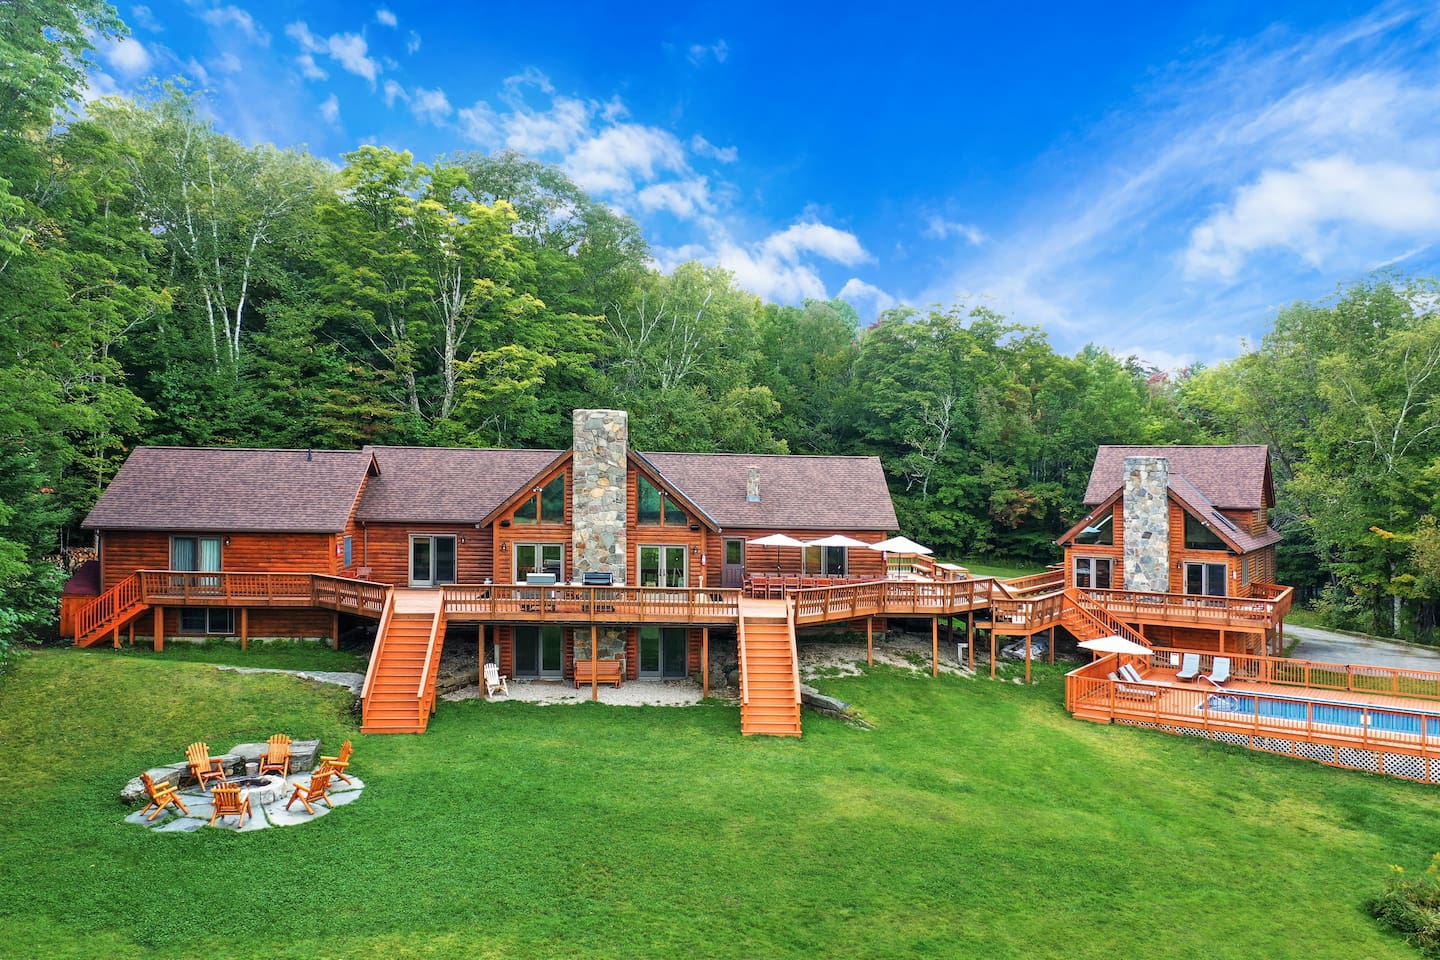 Amazing log estate, 13 BR sleeps 30, private swimming pool, hot tub, game room, sauna, firepit and more! Close to great skiing, hiking, and the best Vermont has to offer. Great for large groups, corporate retreats, and weddings.